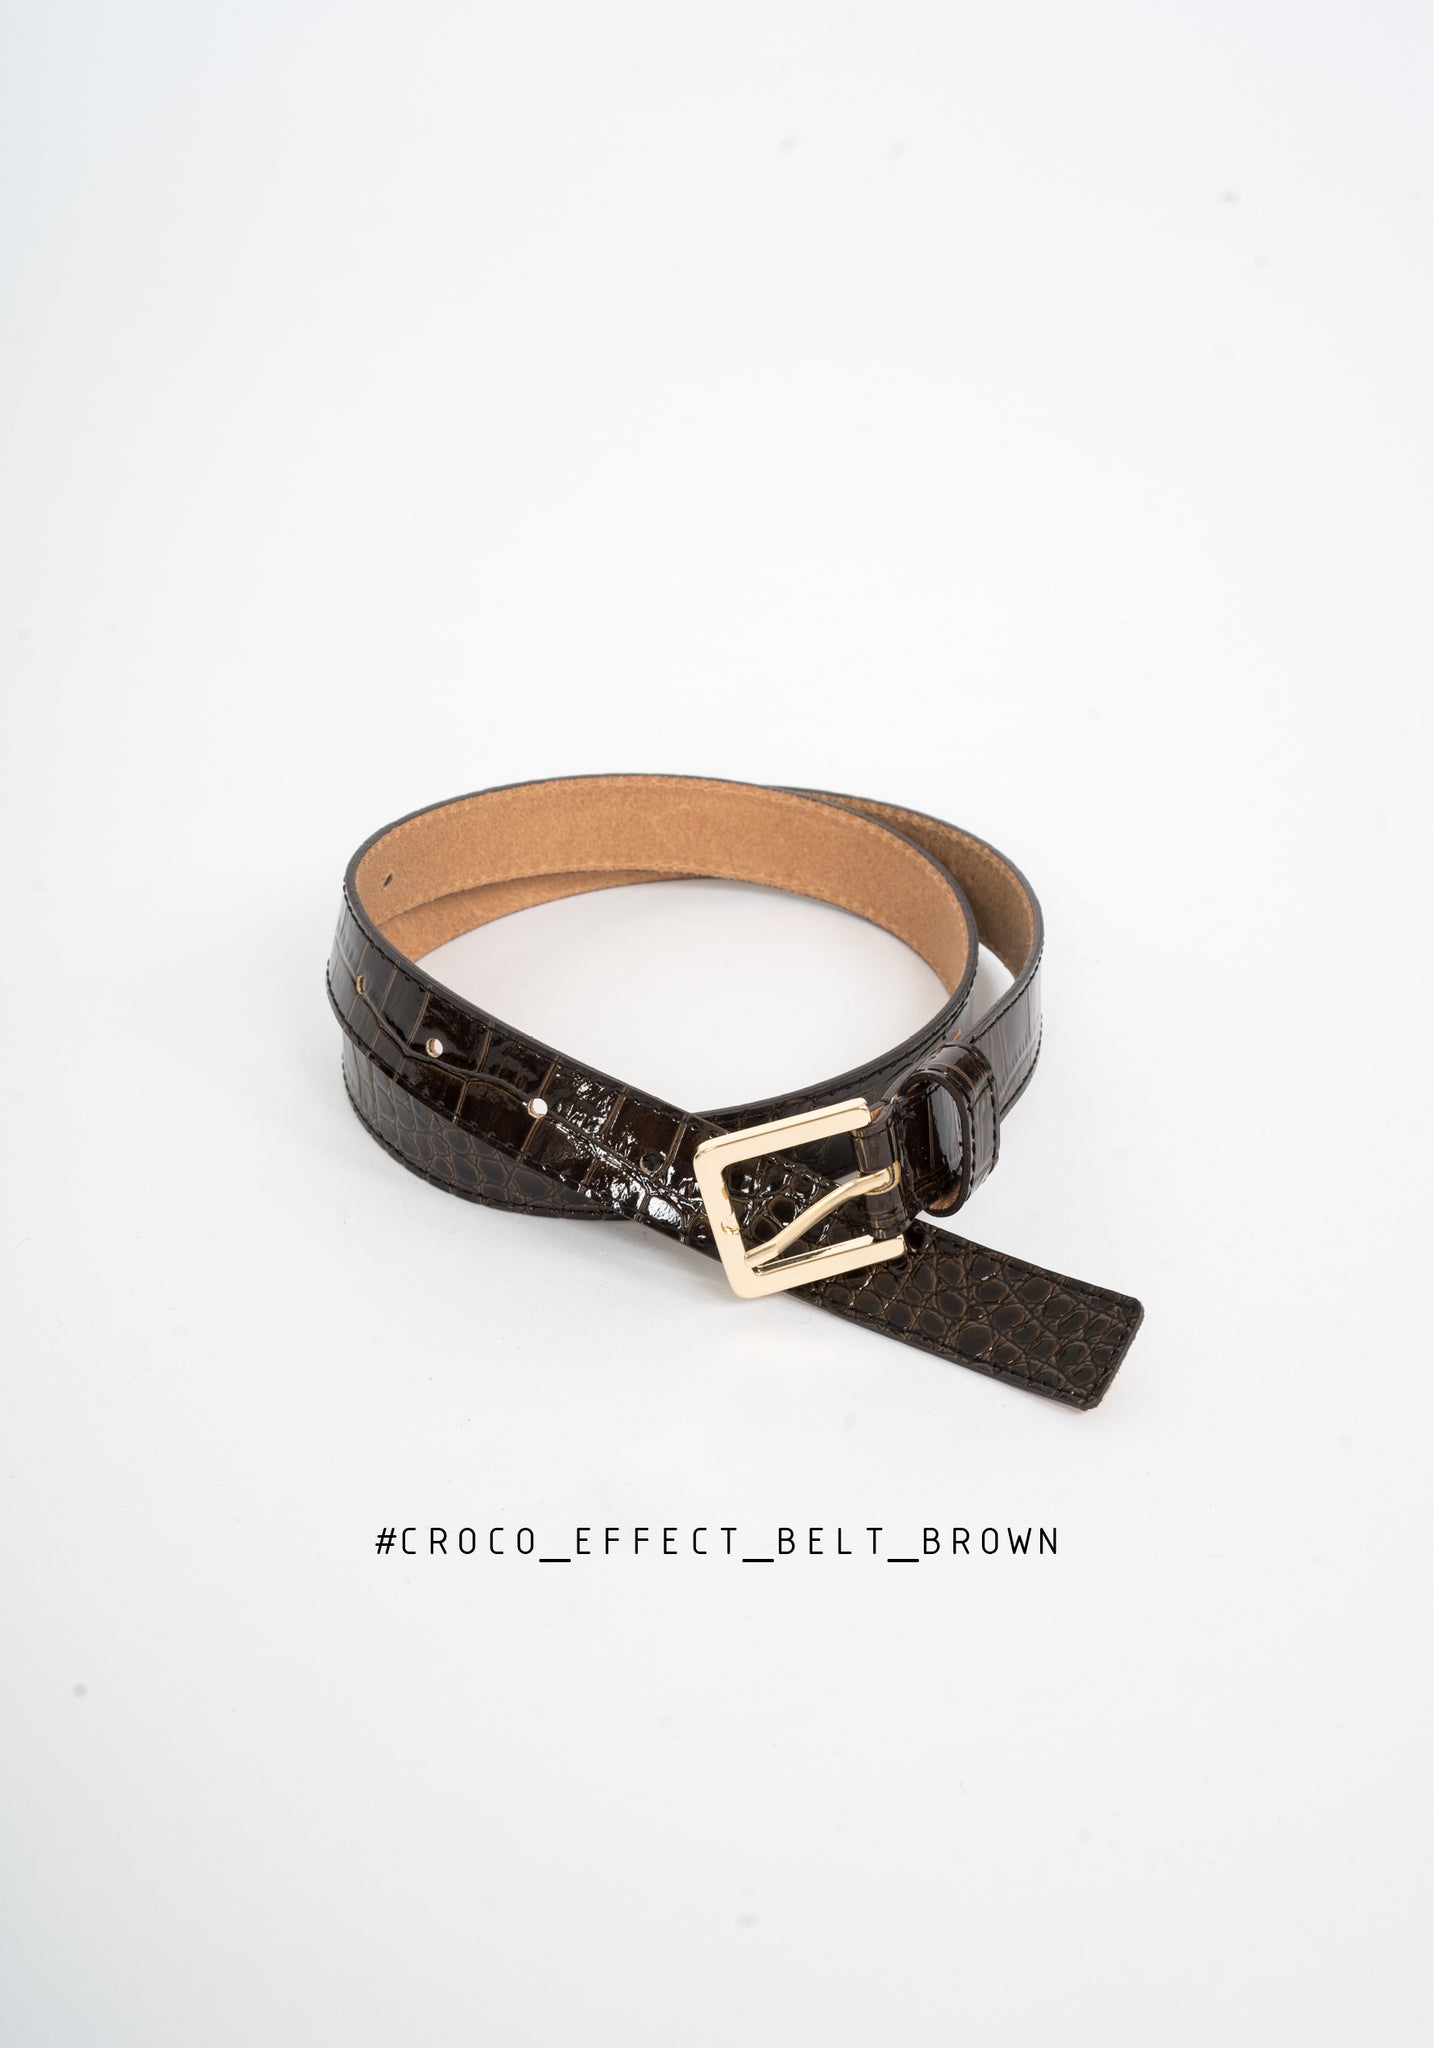 Croco Effect Belt Brown